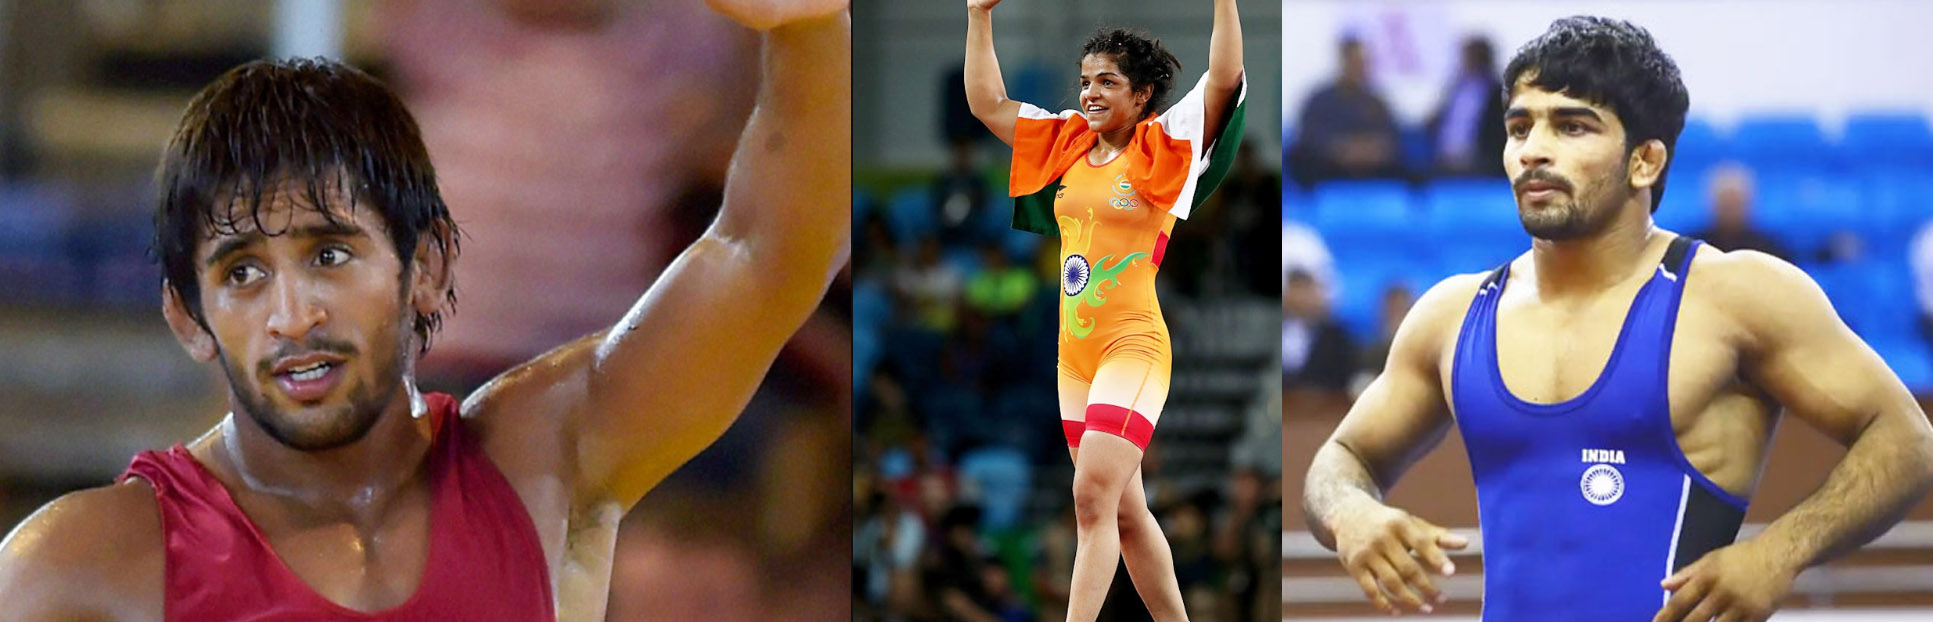 World Championship, Yogeshwar Dutt, Sports